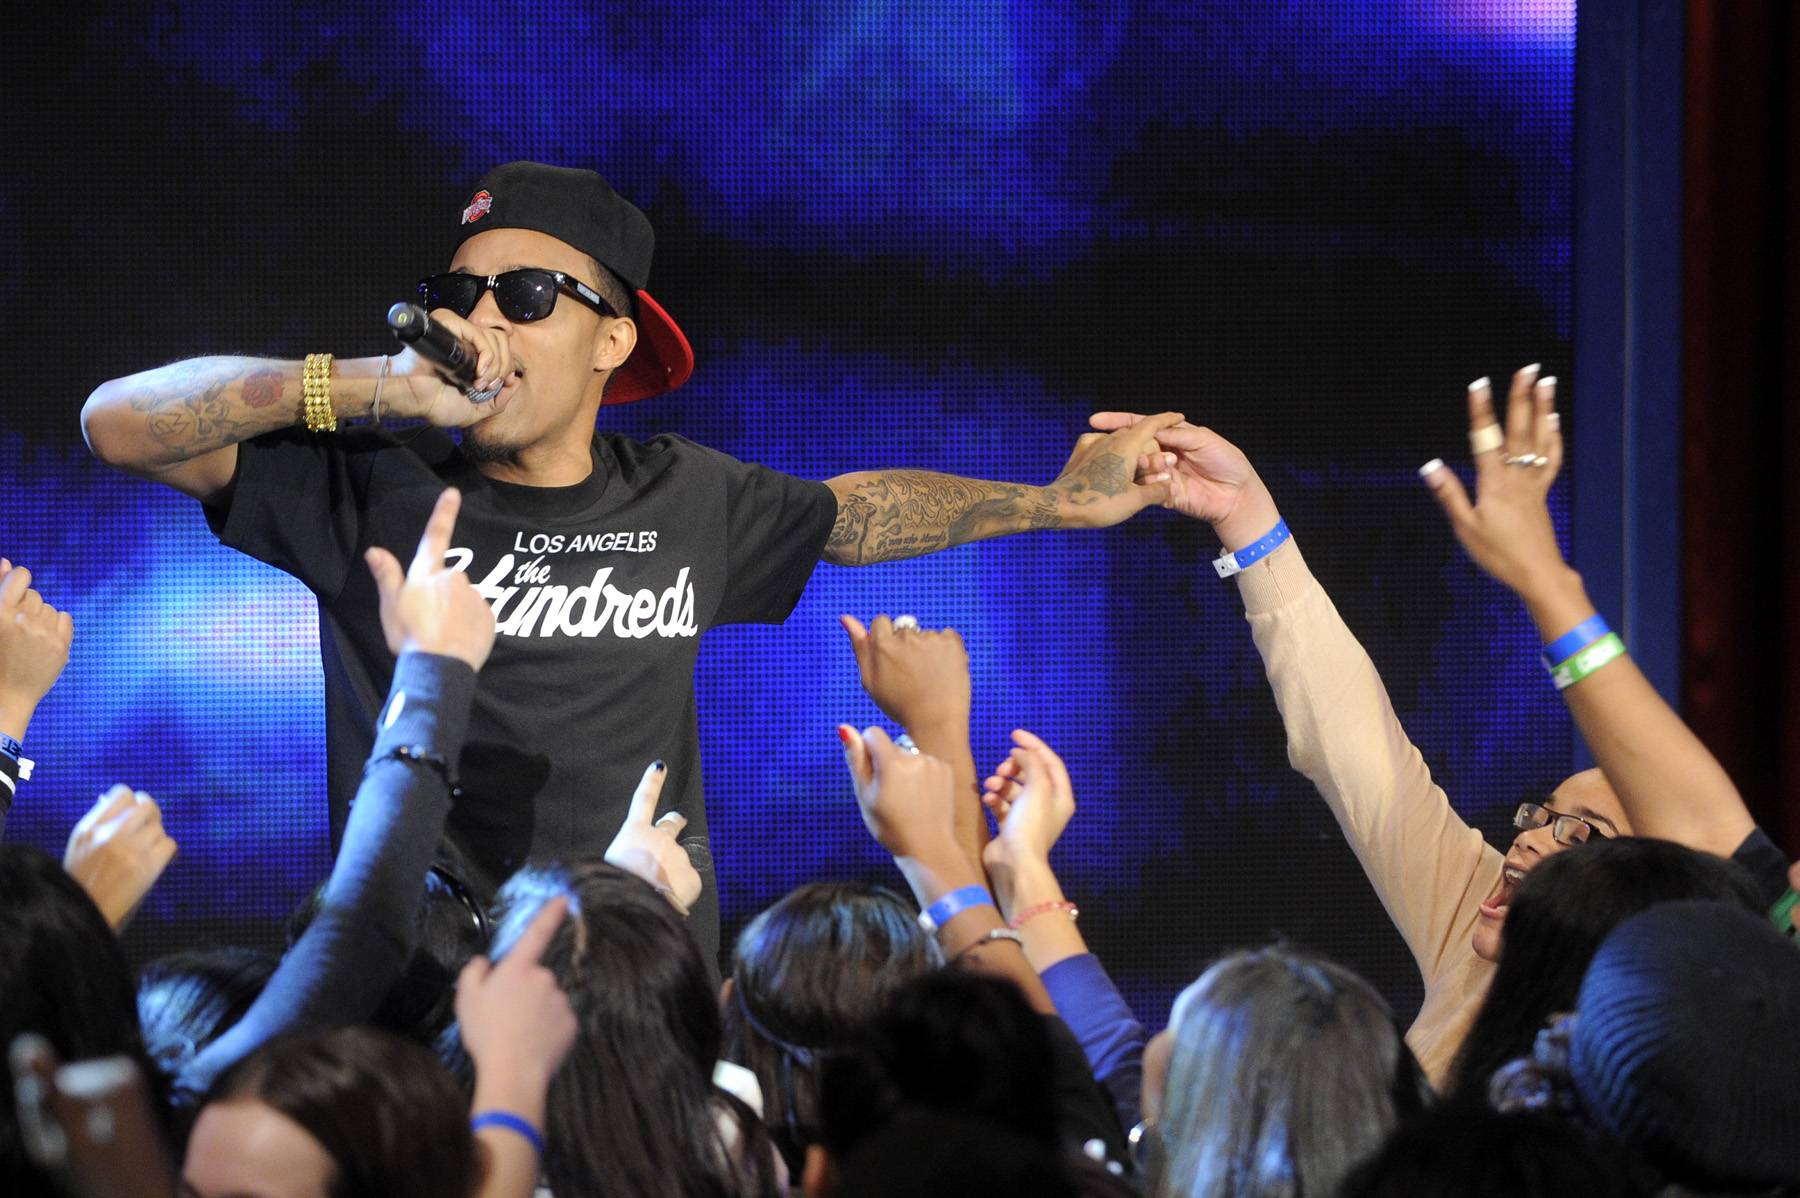 Touch My Hand - Bow Wow performs at 106 & Park, January 23, 2012. (Photo: John Ricard / BET)